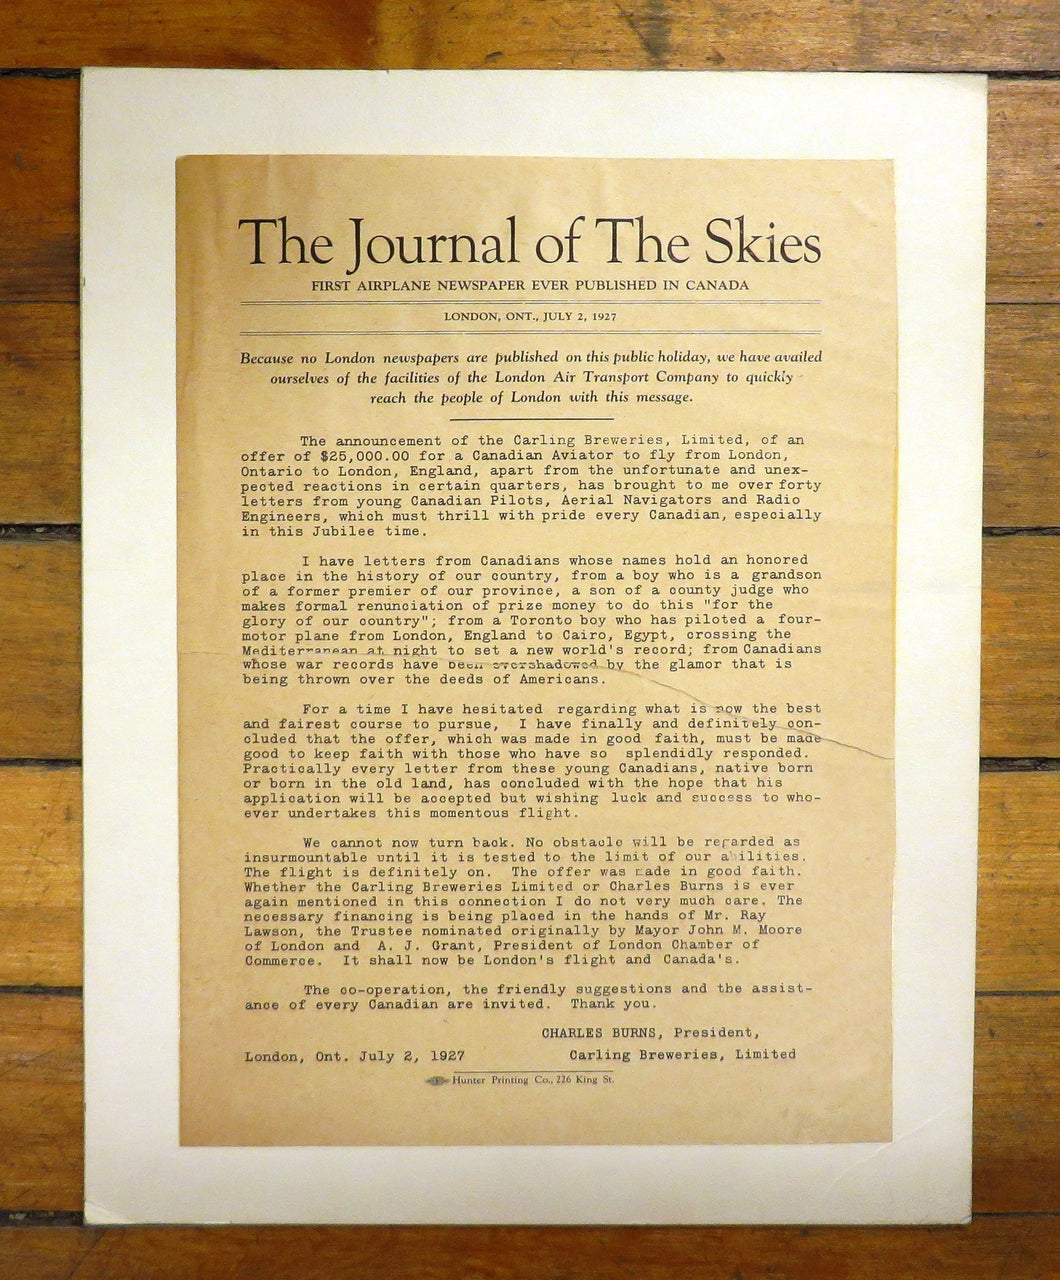 The Journal of The Skies: First Airplane Newspaper Ever Published in Canada